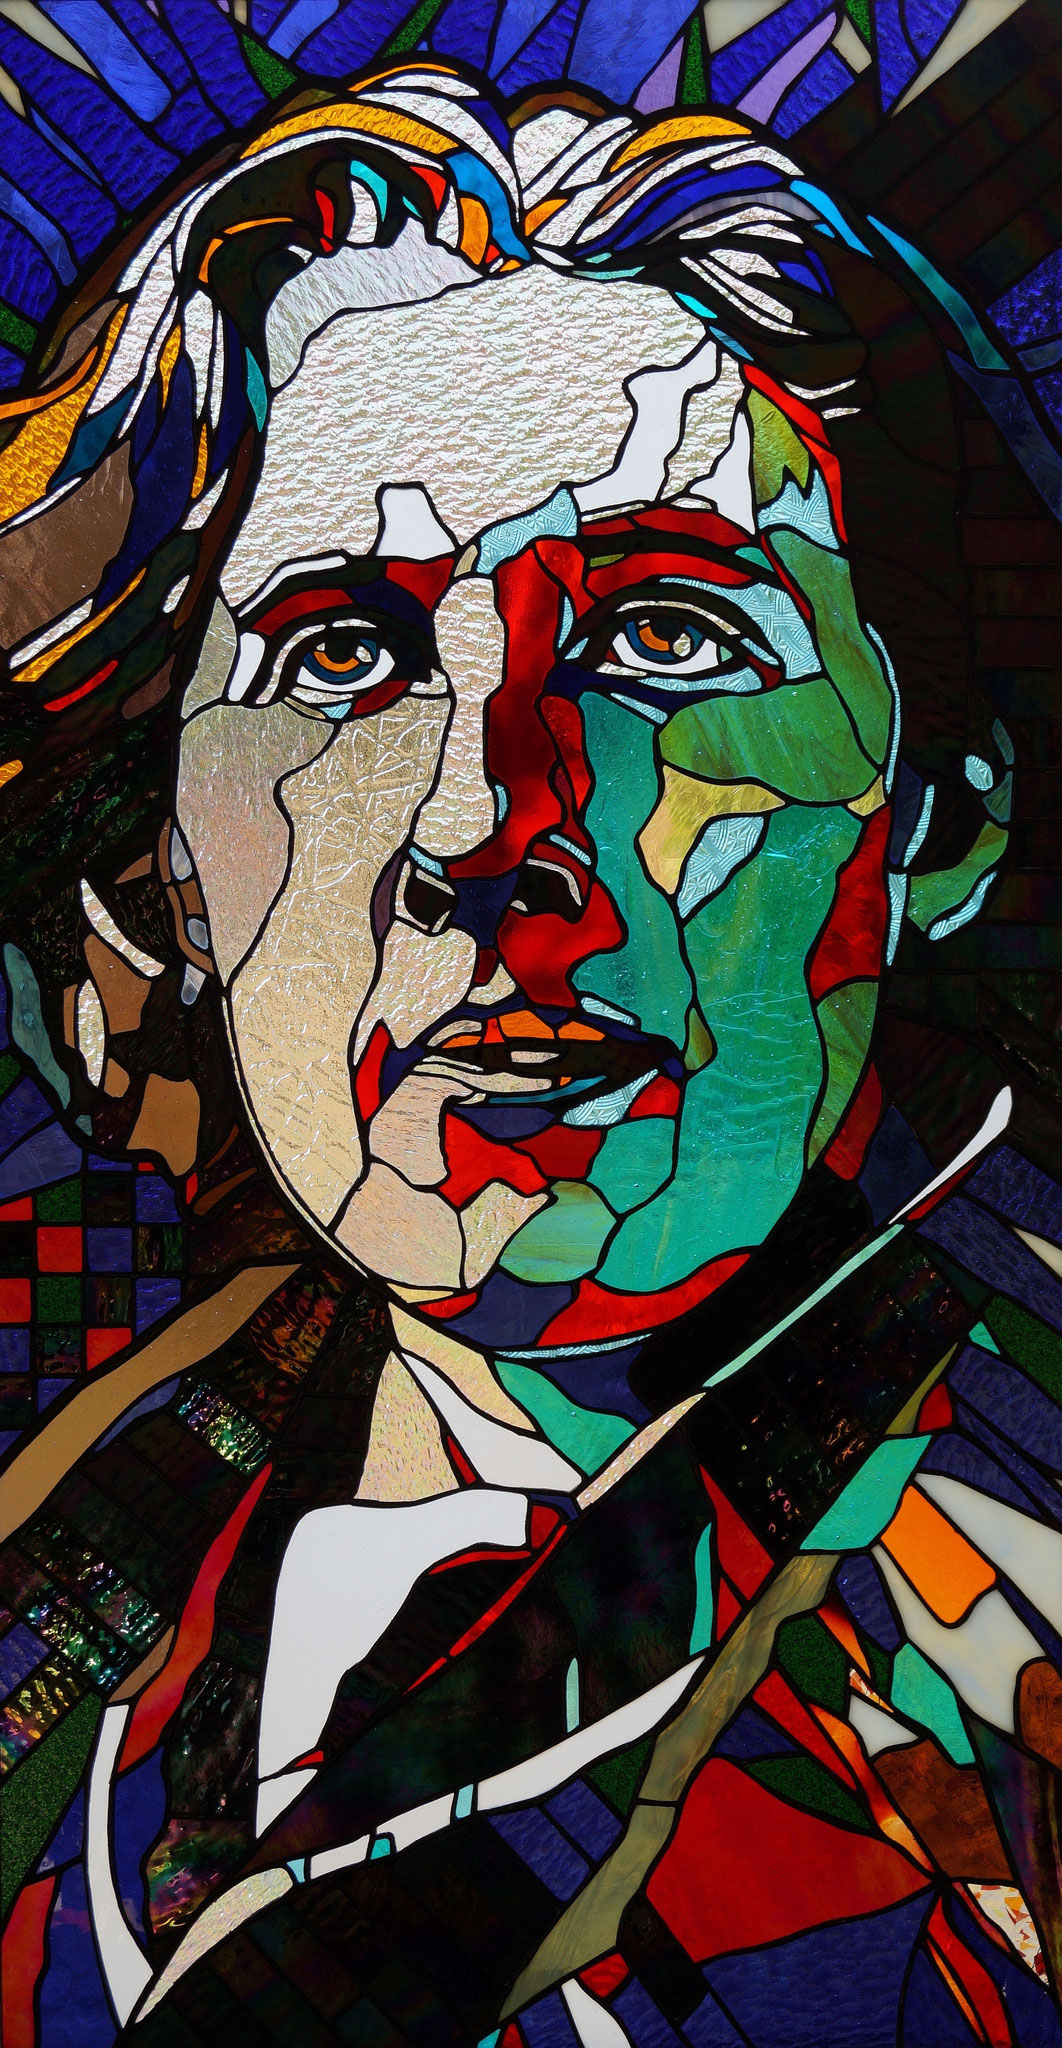 OSCAR WILDE_21 x 42 inches_photo by Frank Racicot